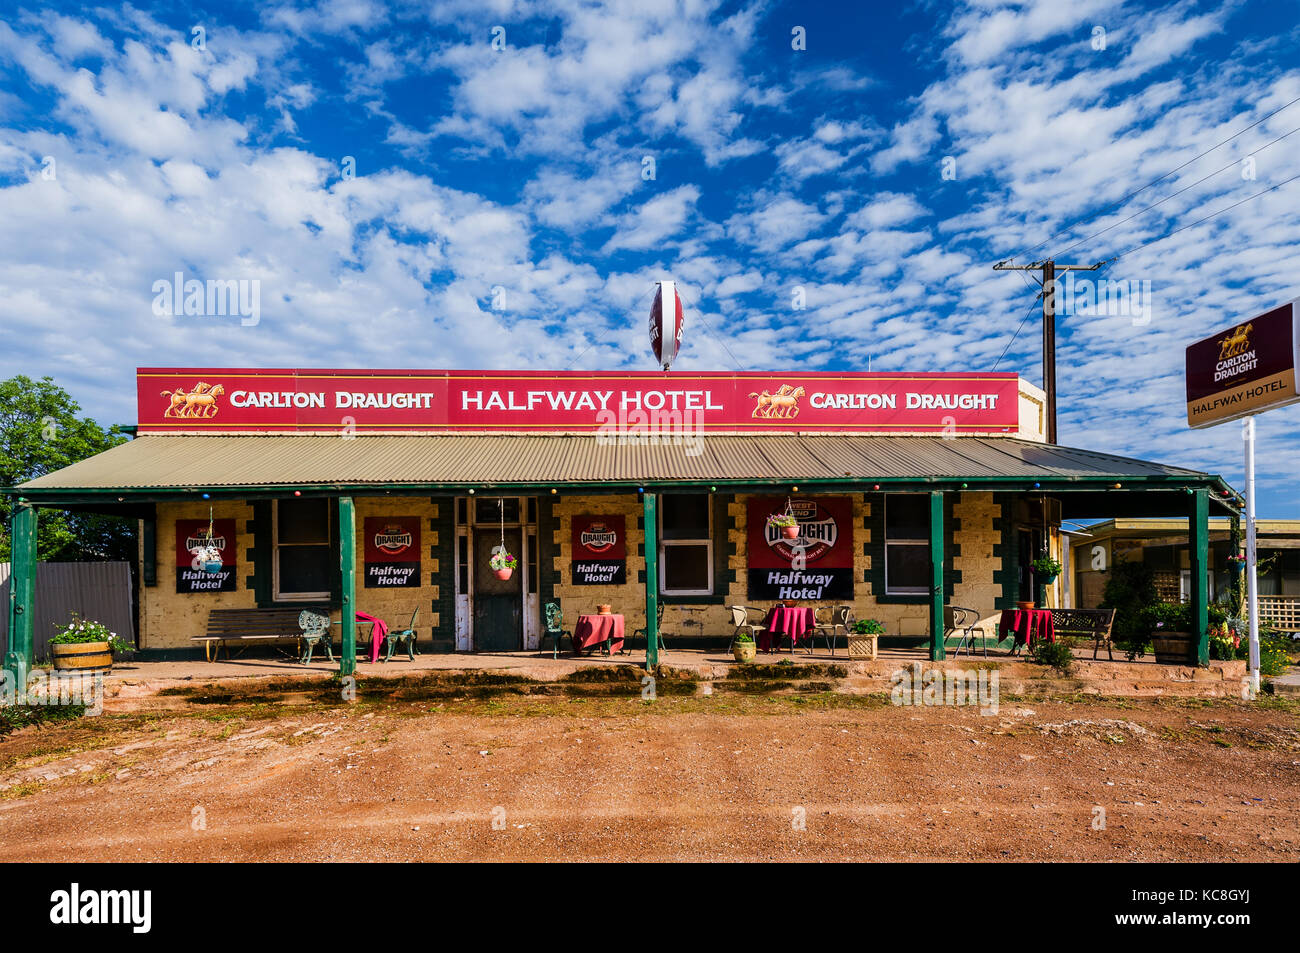 Halfway Hotel right at the Barrier Highway from South Australia to New South Wales. - Stock Image